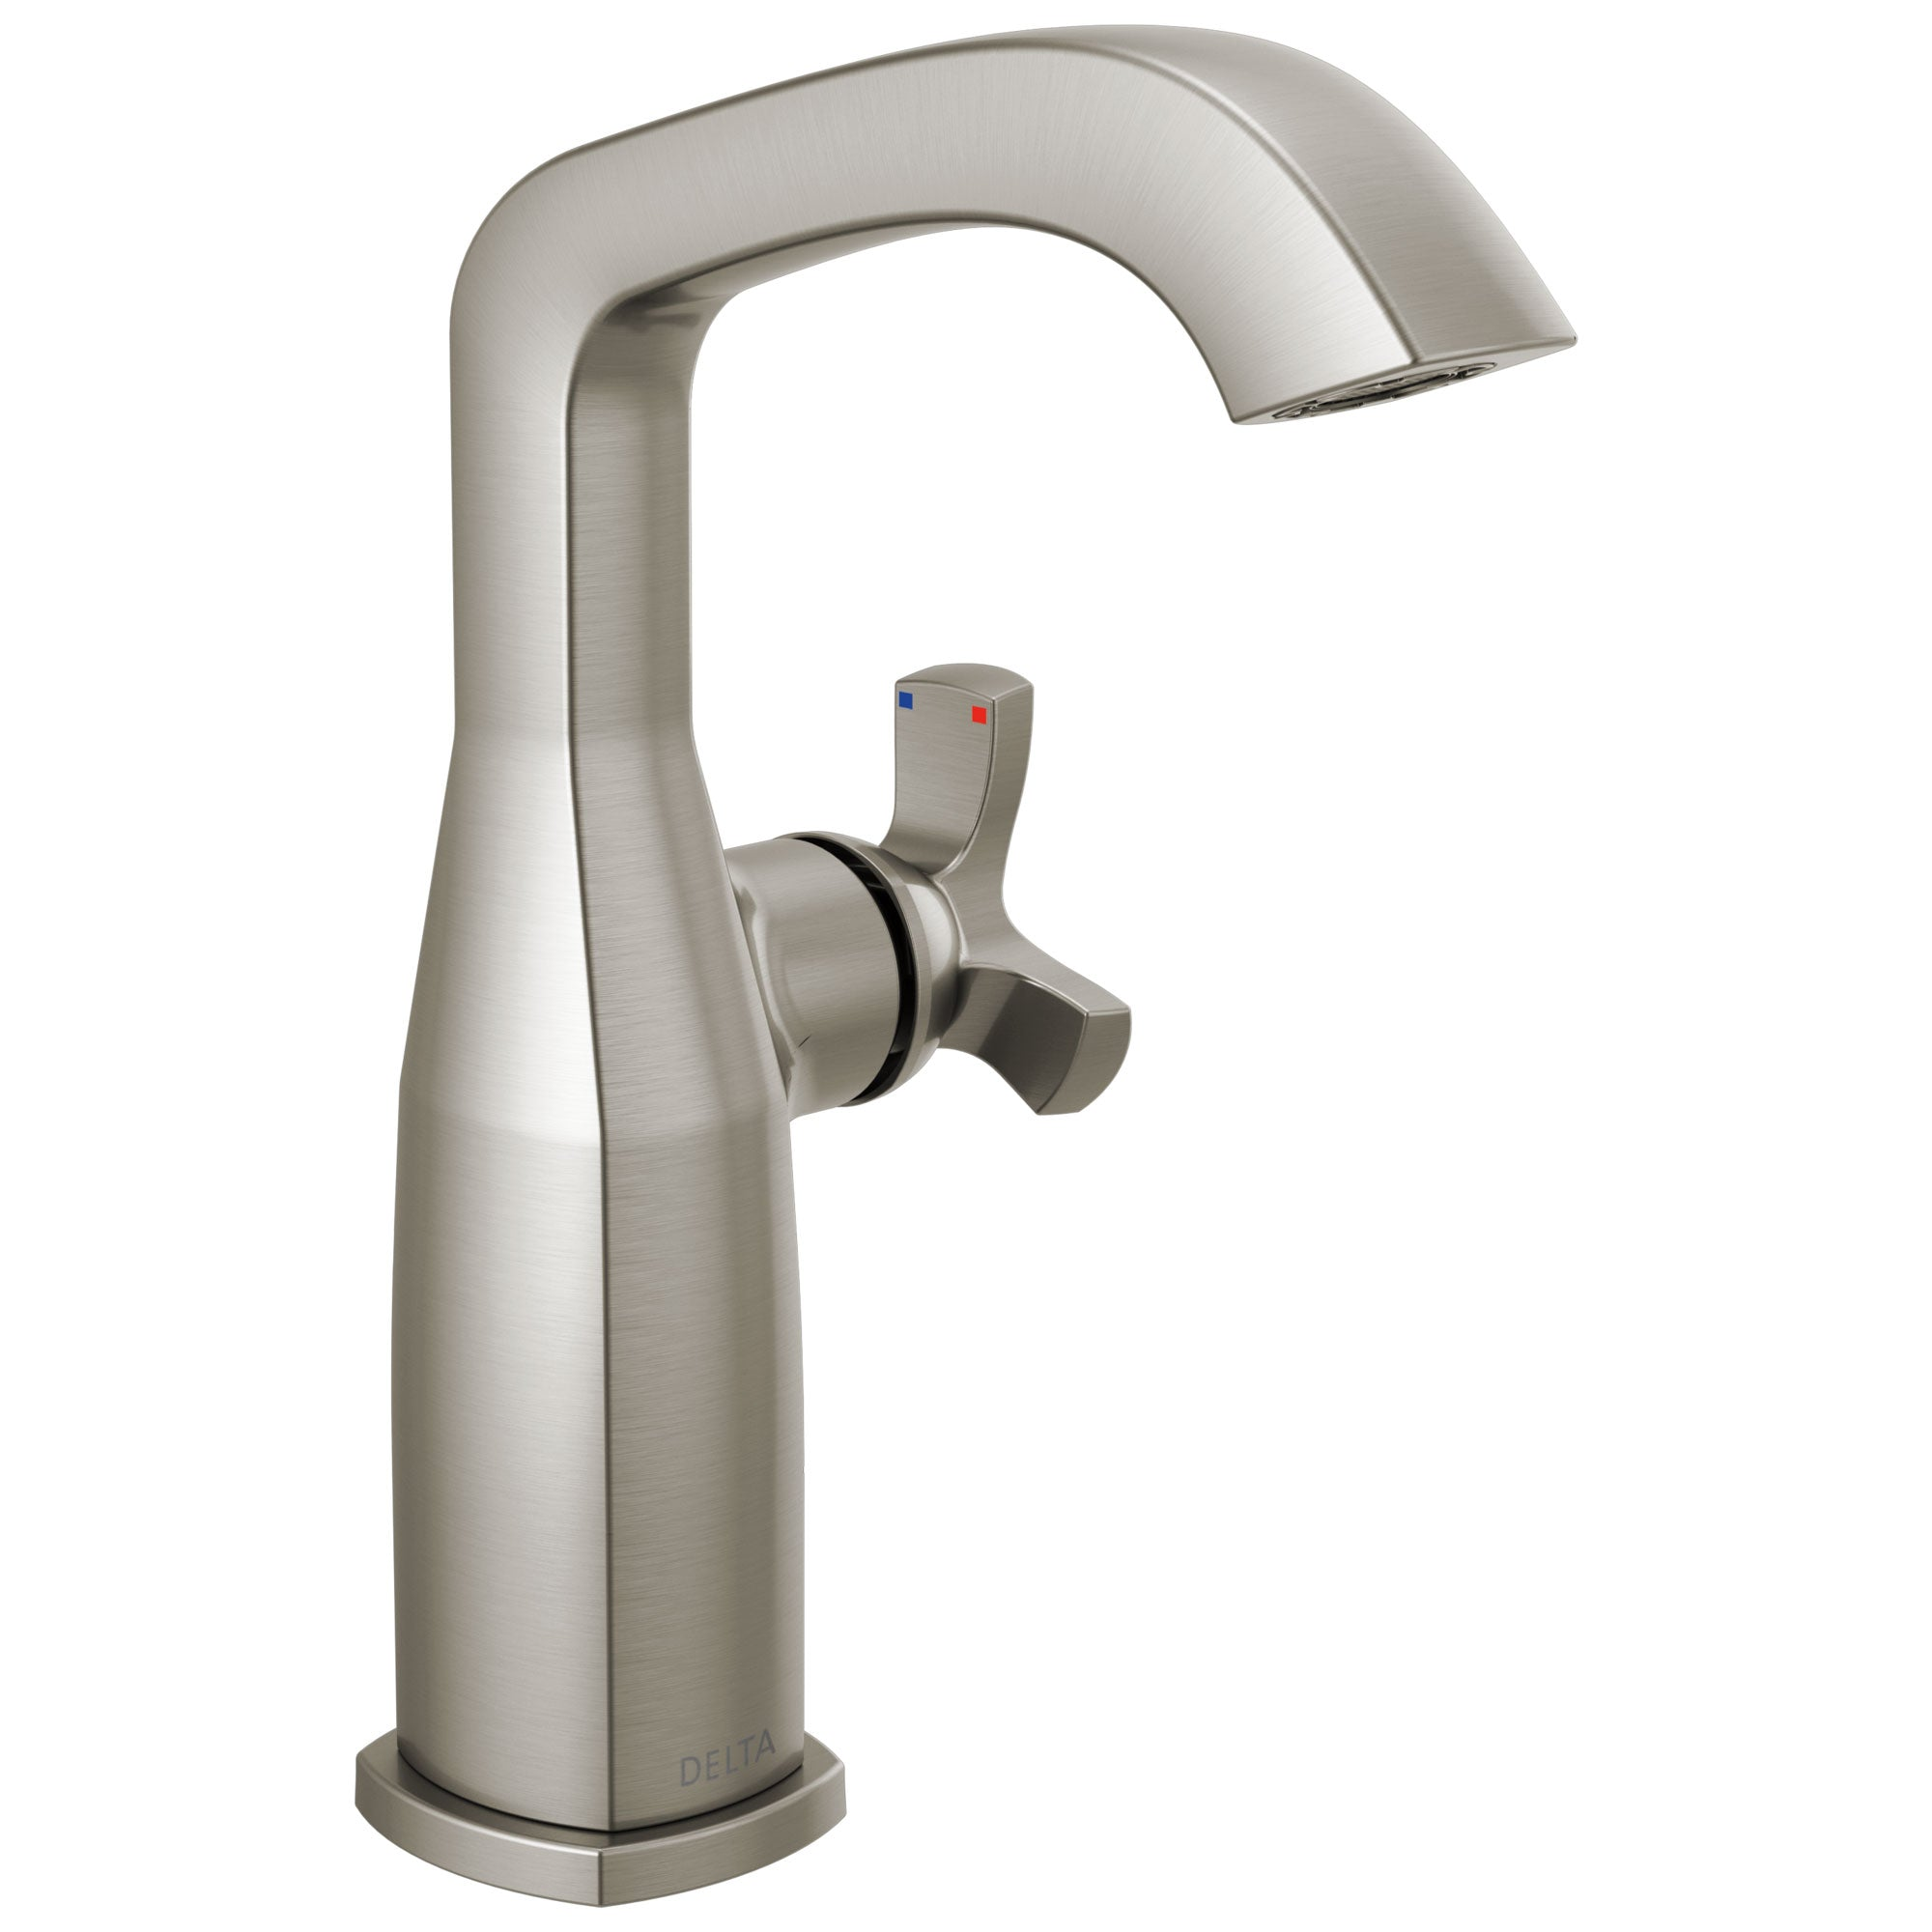 Delta Stryke Stainless Steel Finish Mid-Height Spout Single Hole Bathroom Sink Faucet Includes Helo Cross Handle D3590V